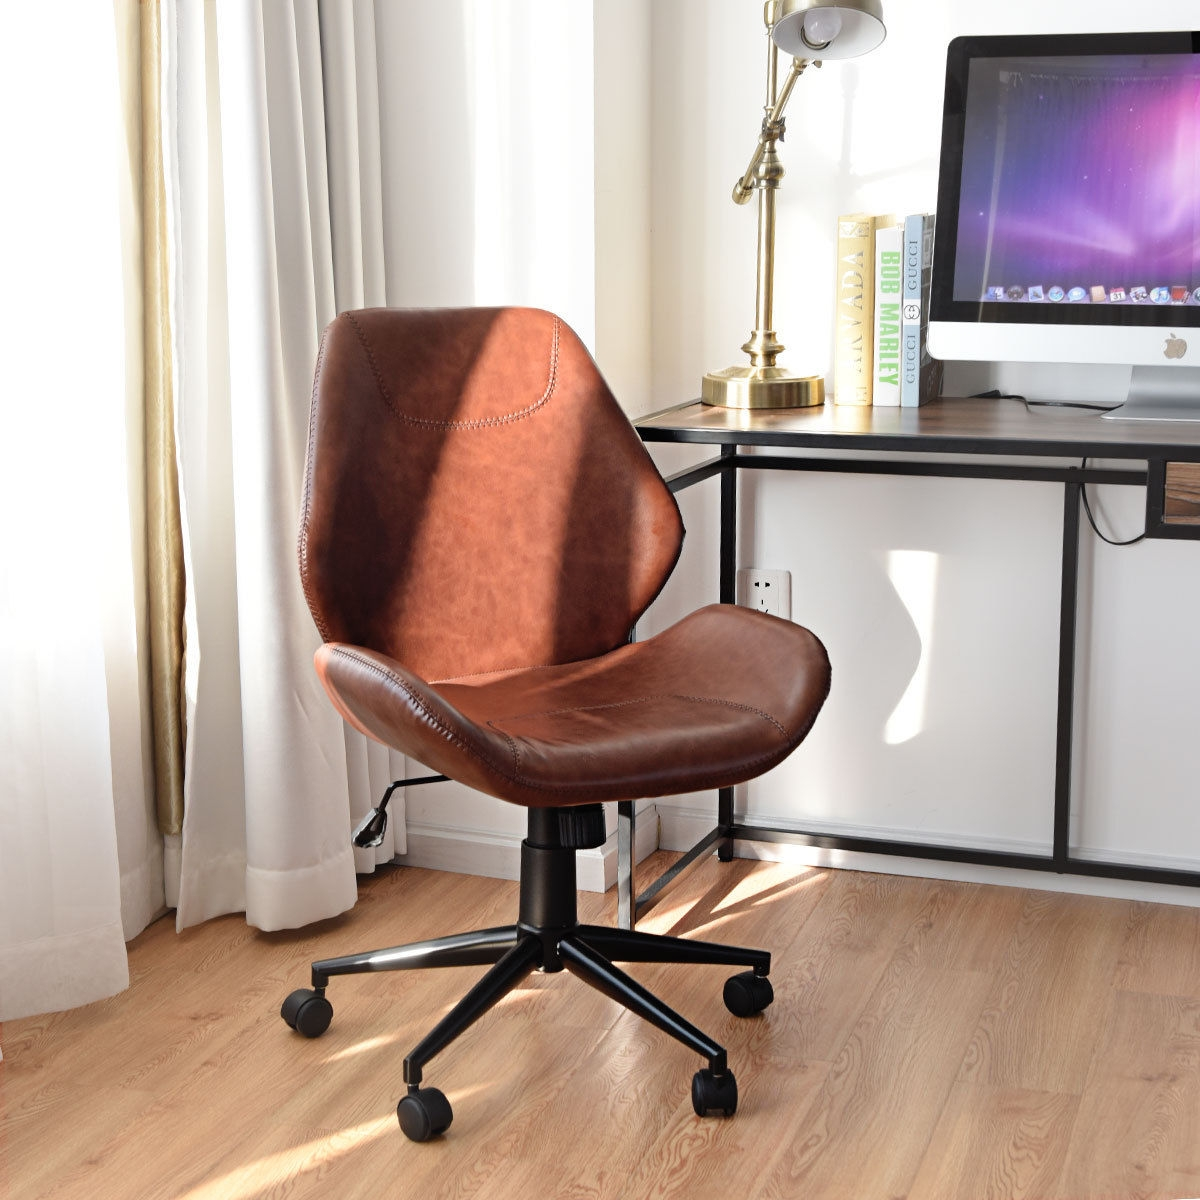 Image of Office Home Leisure Mid-Back Upholstered Rolling Chair